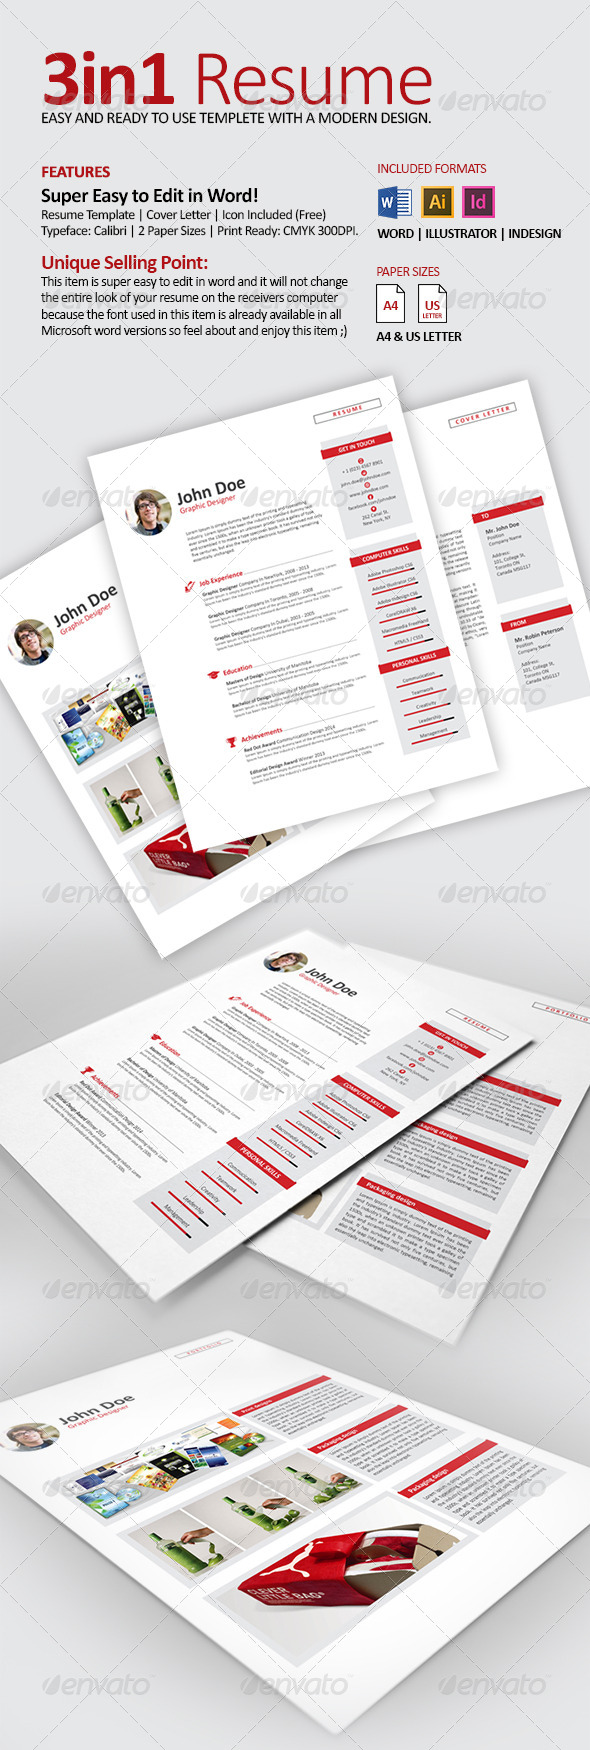 GraphicRiver 3in1 Clean Resume CV with Word Files 7896214